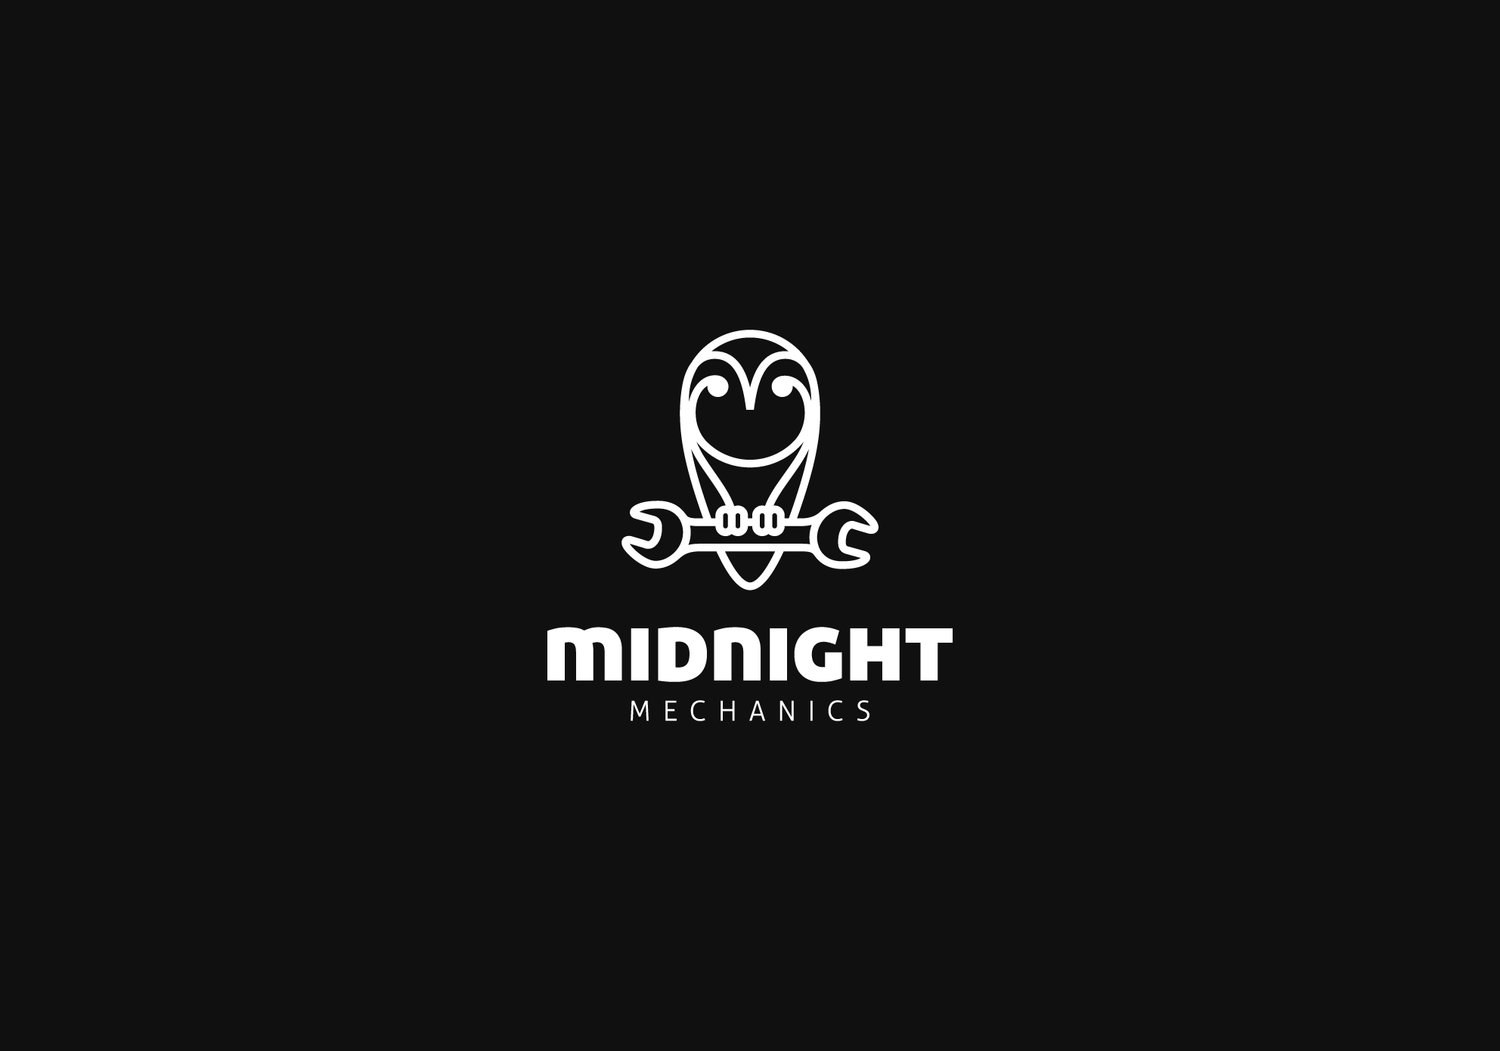 The Midnight Mechanics